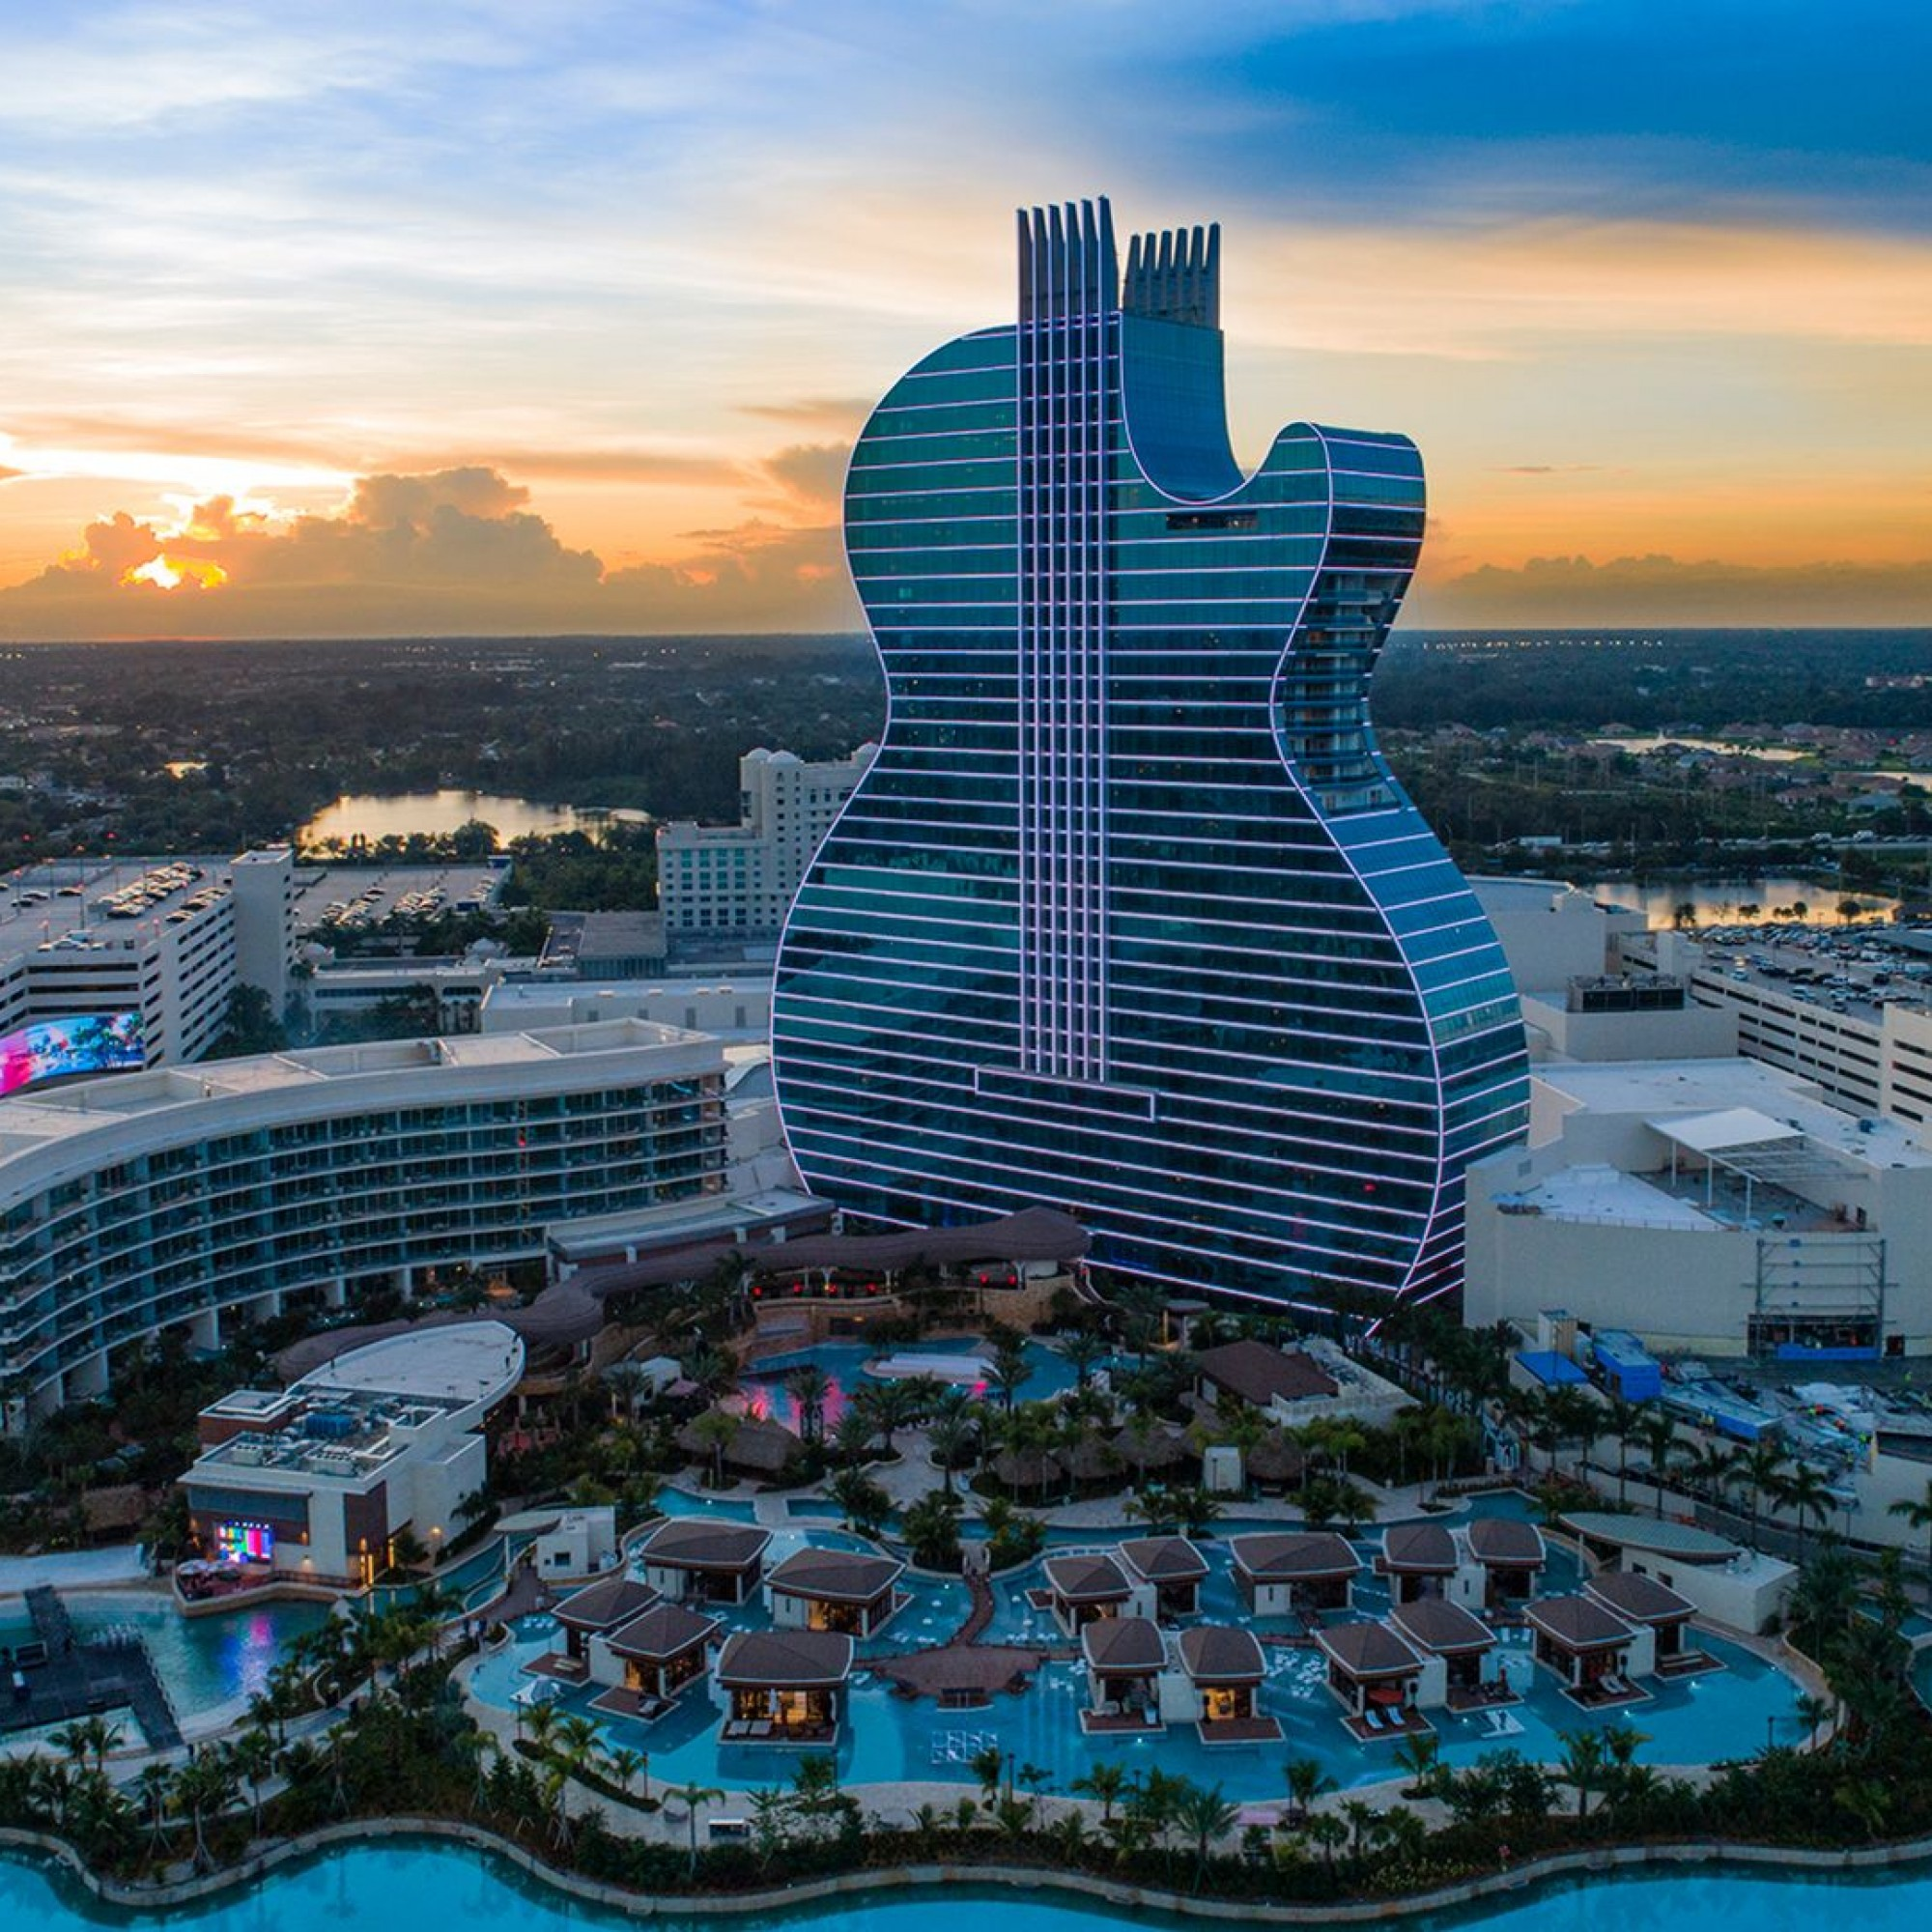 Hard Rock Hotel in Hollywood (Florida)